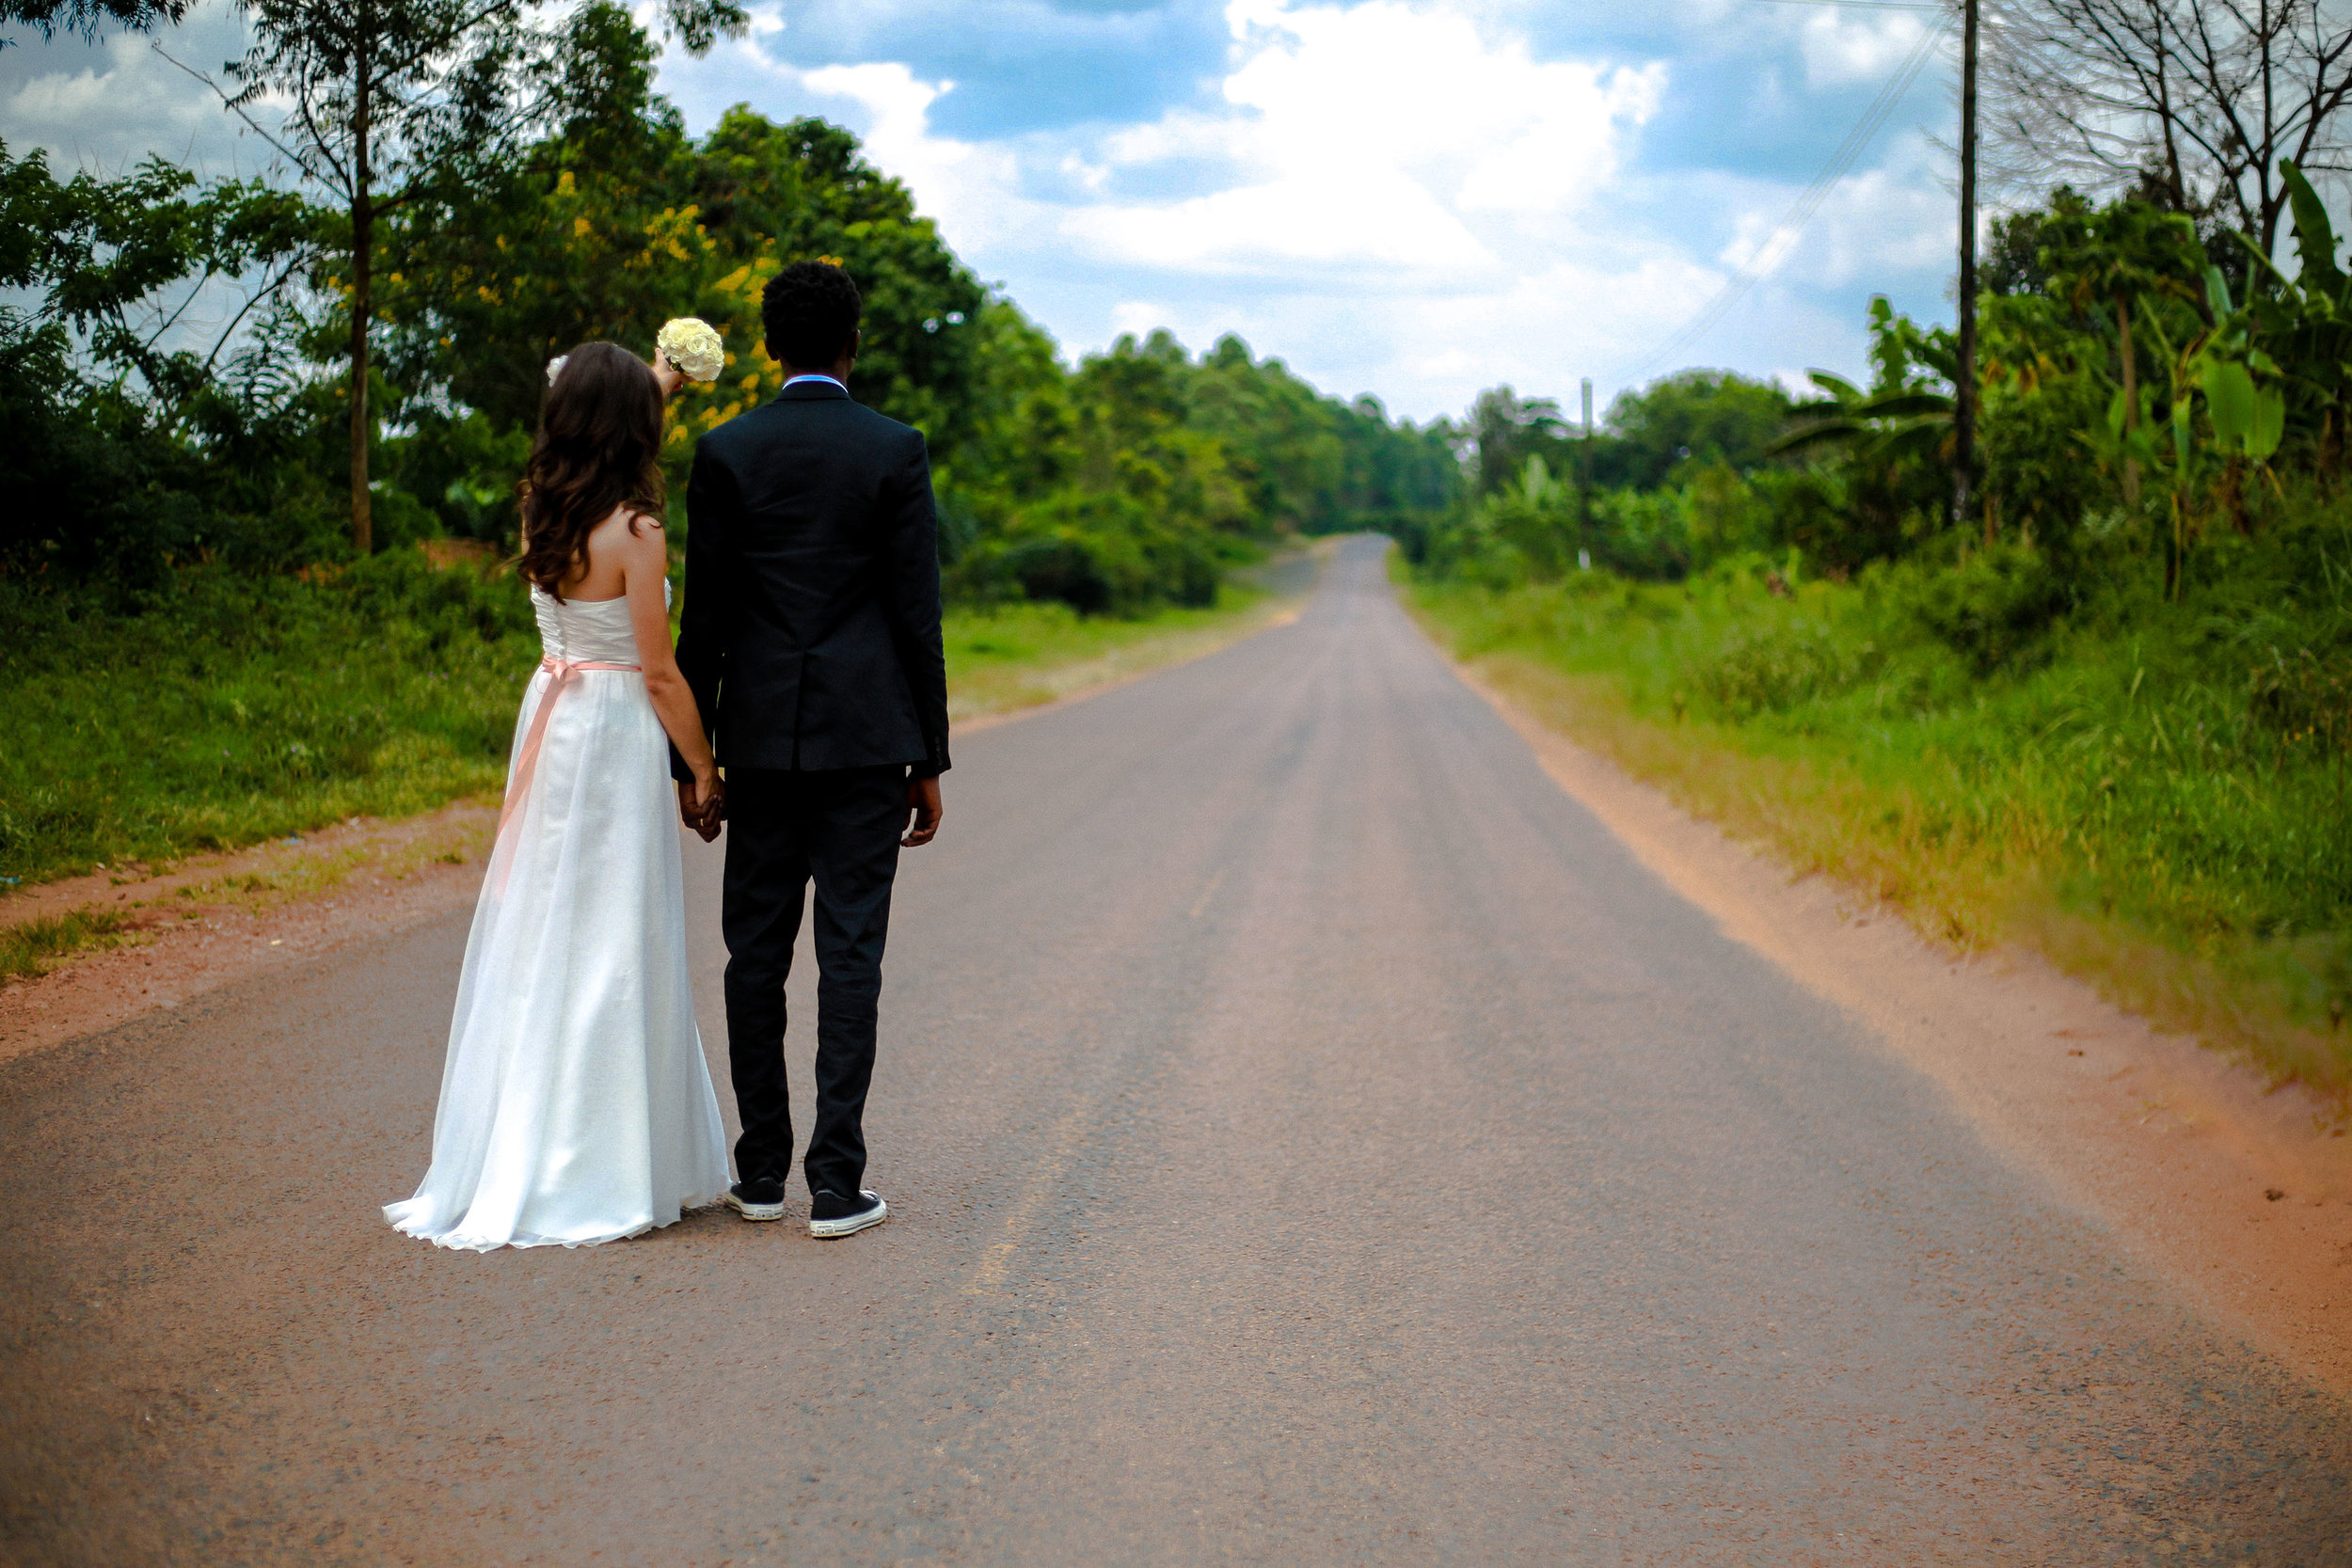 Marriage is for Mission — Jen Oshman